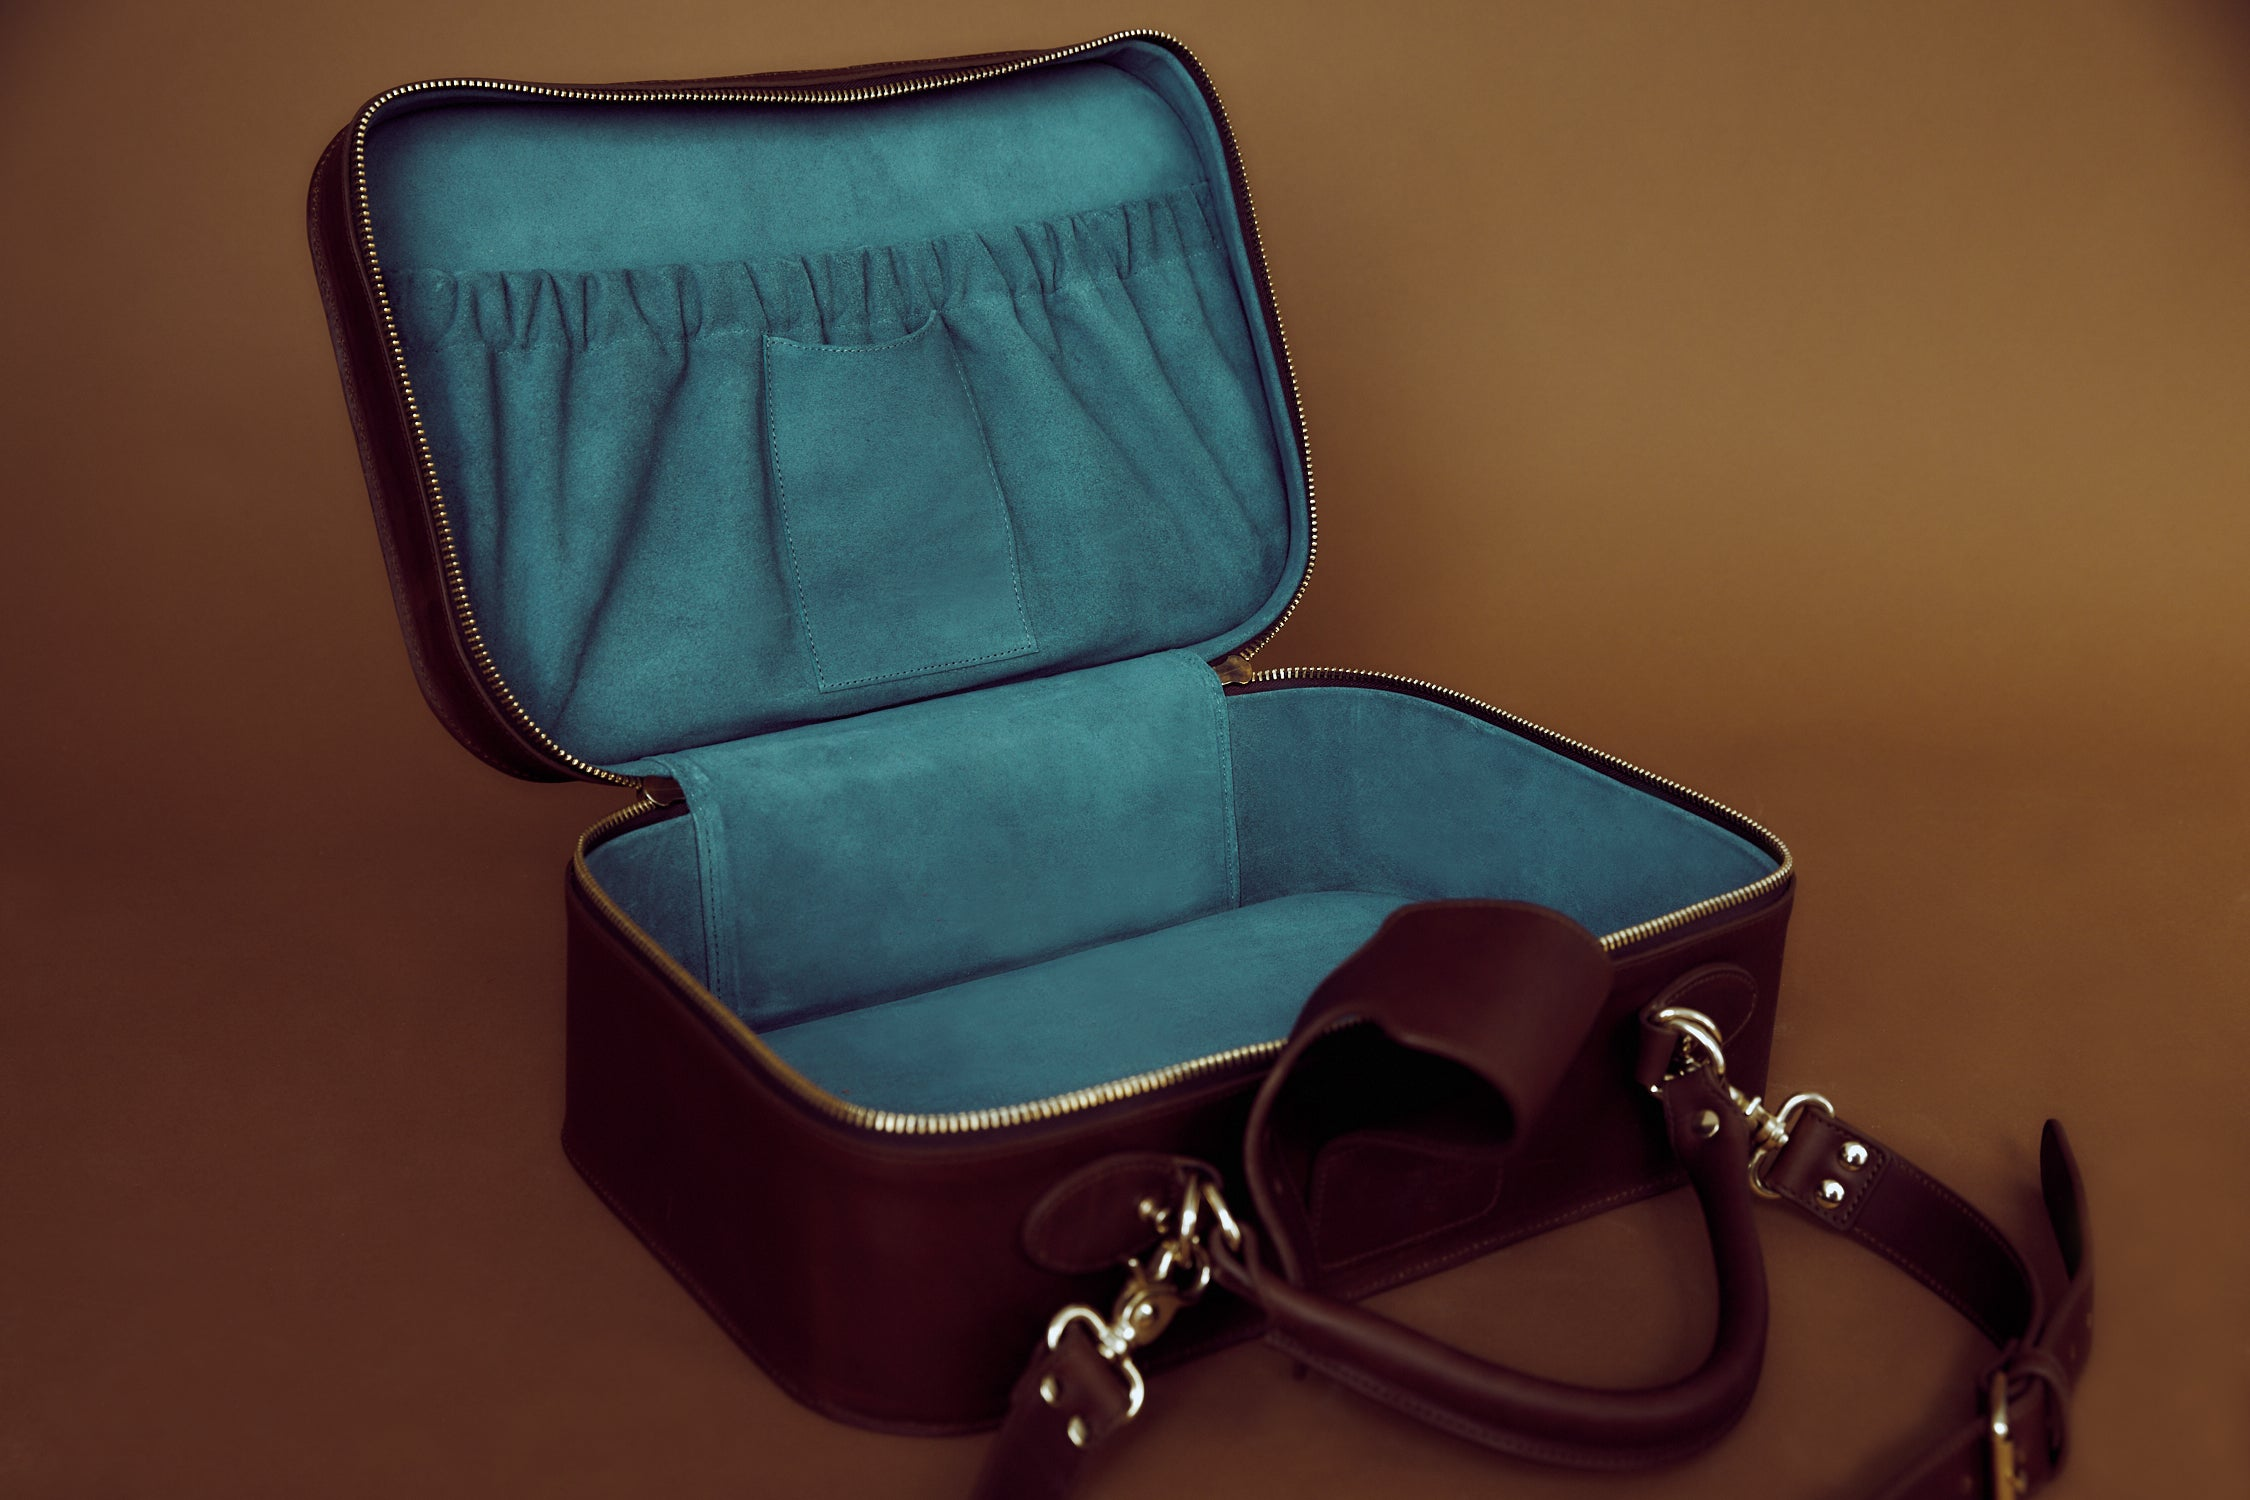 The Sonder Briefcase